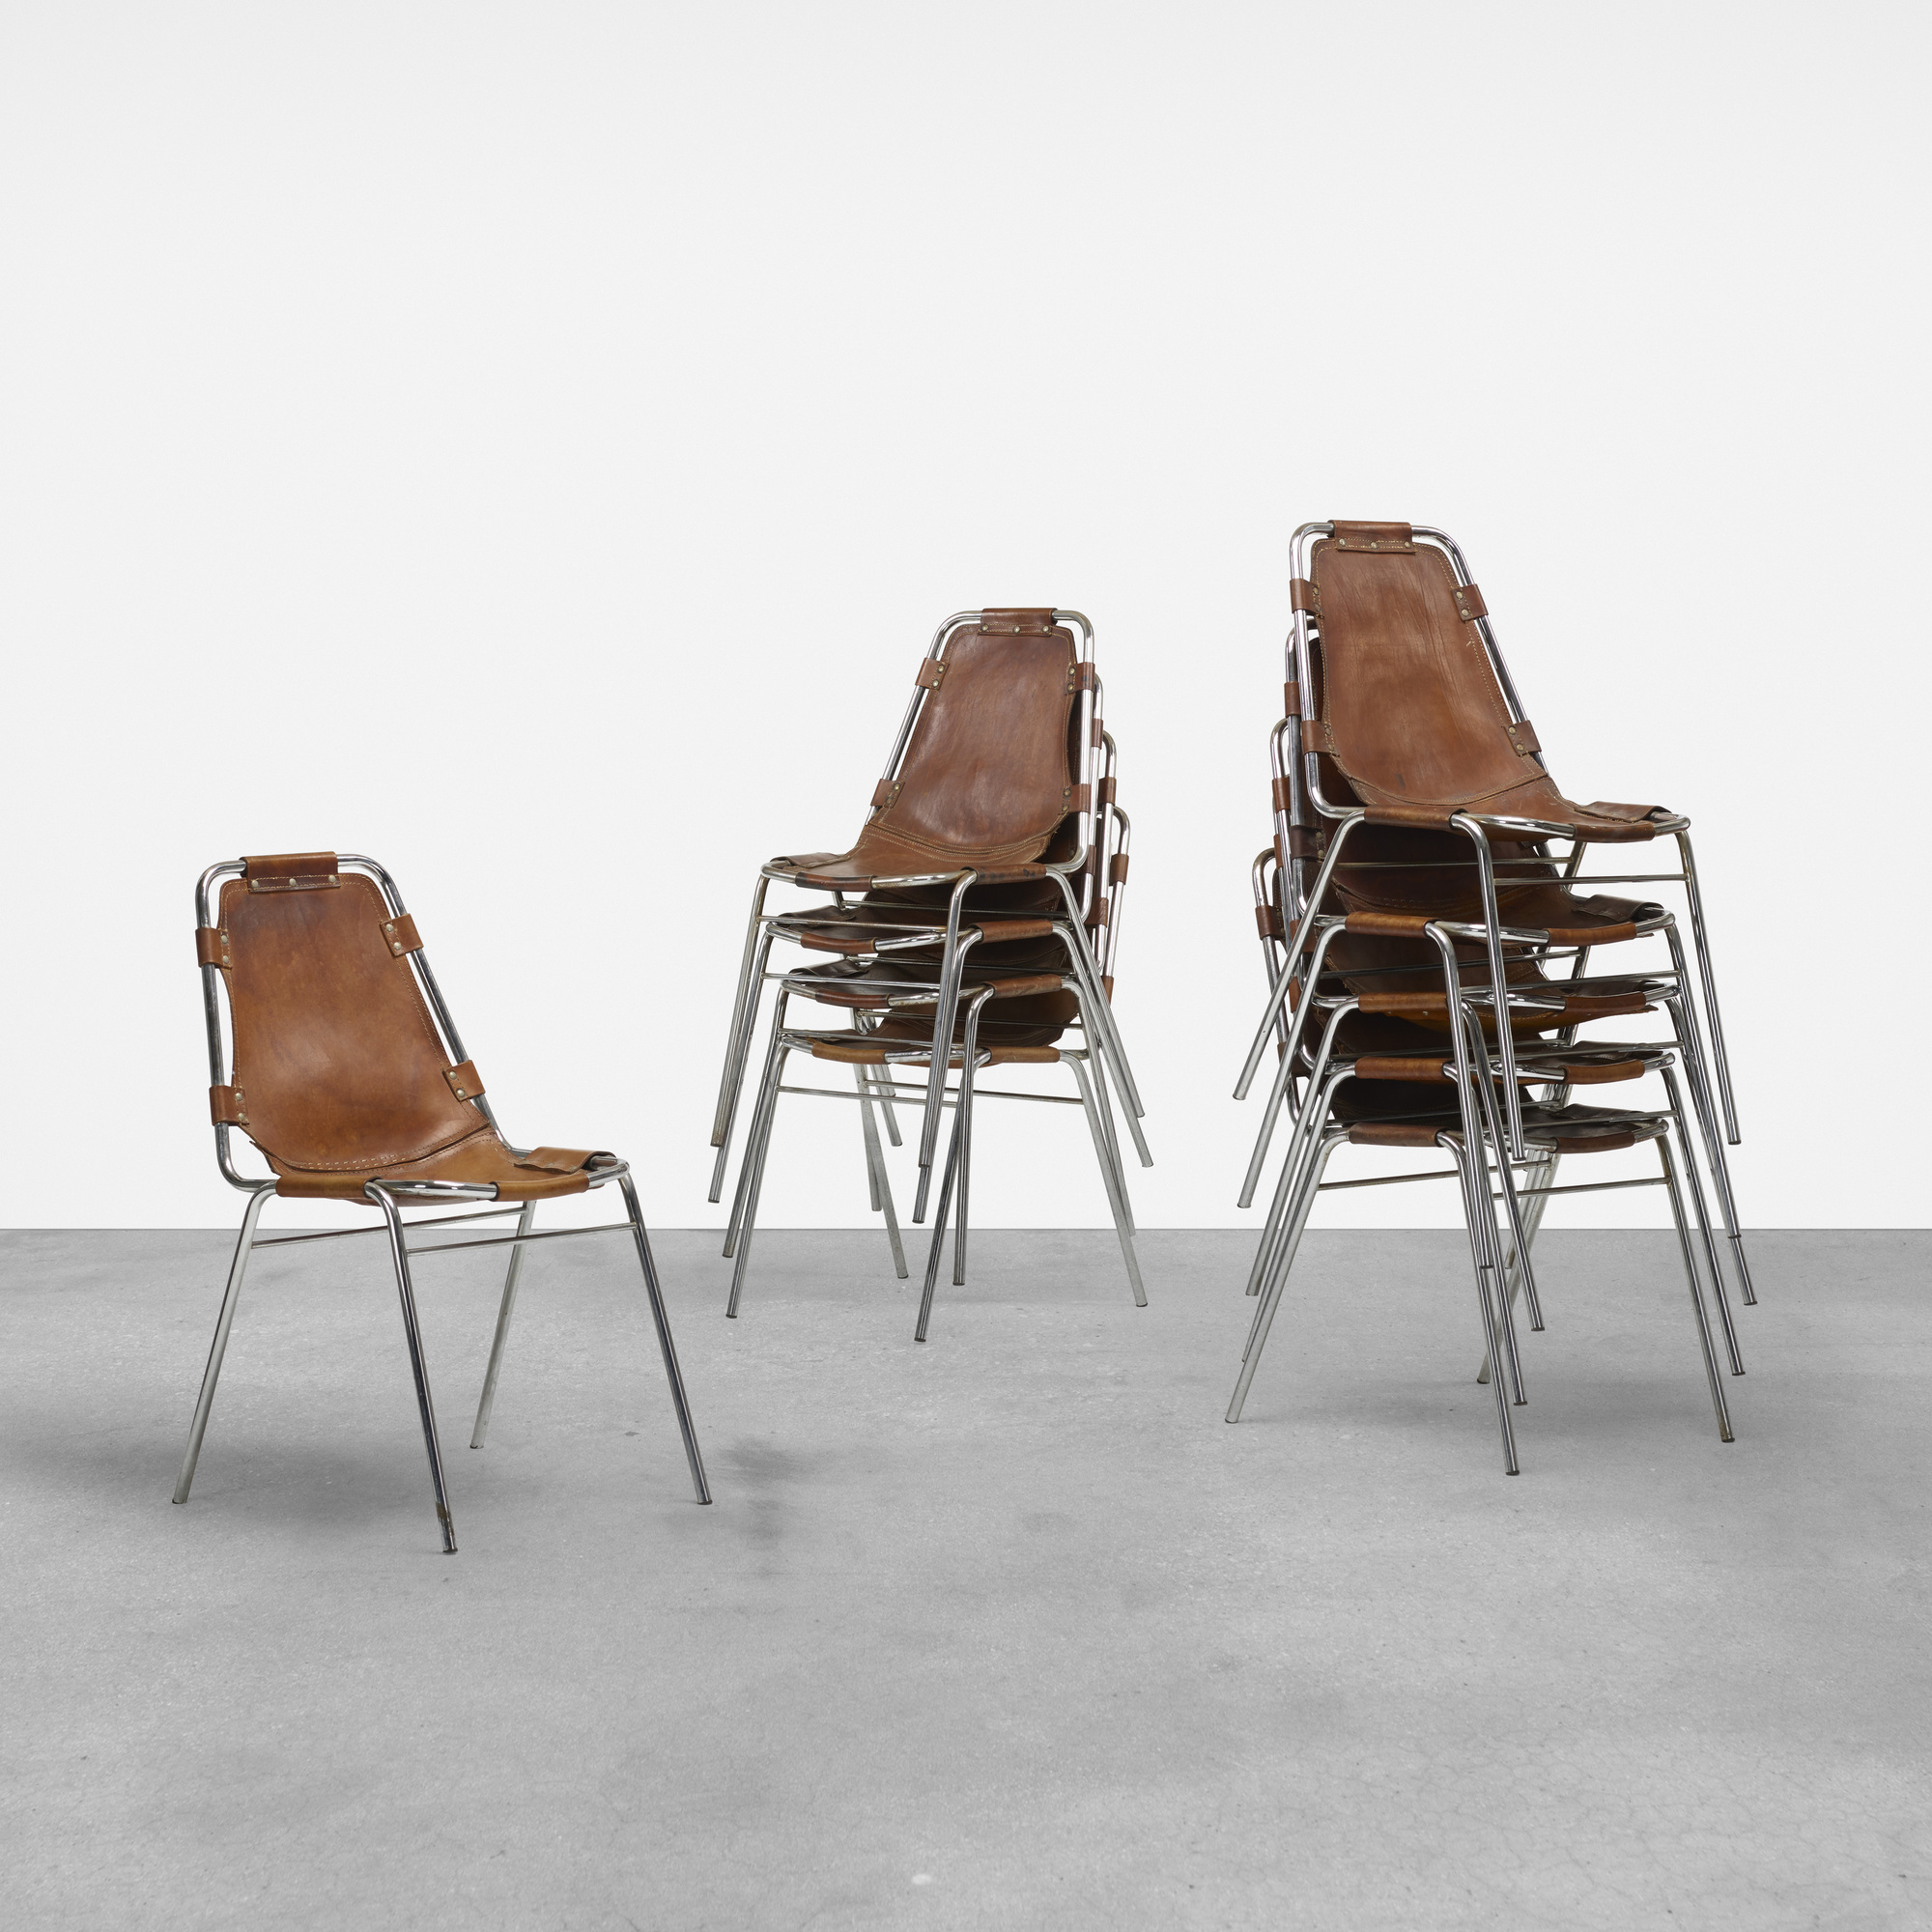 117: Charlotte Perriand / dining chairs from Les Arcs, set of ten (1 of 5)